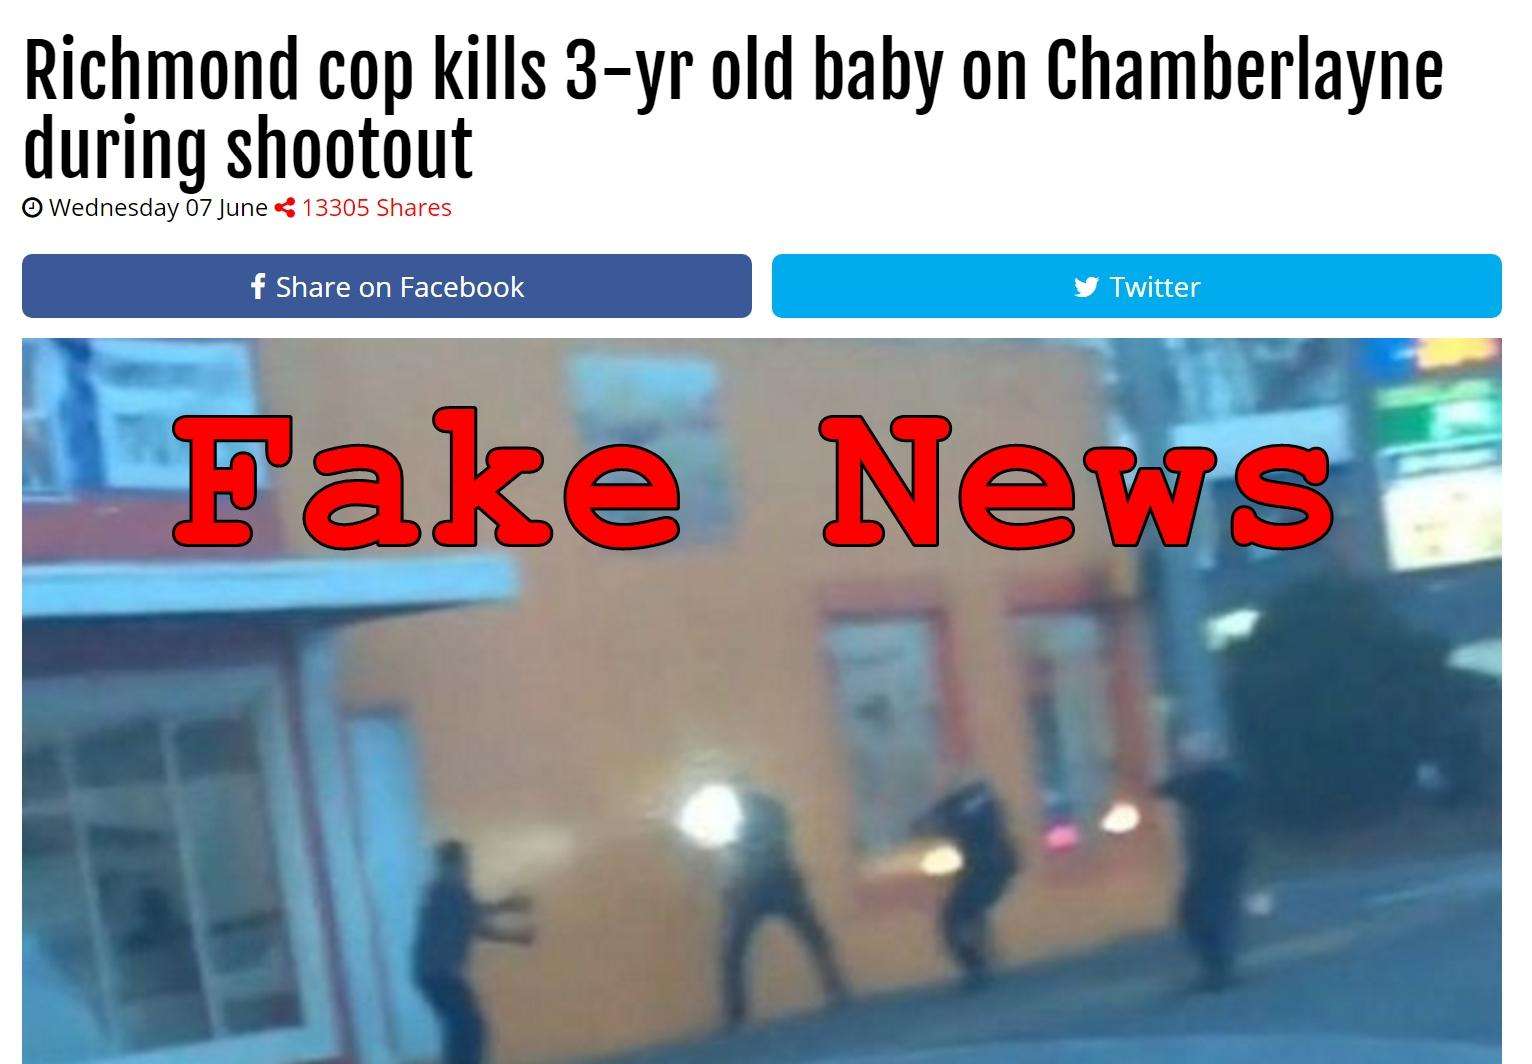 Fake News: Richmond Cop Did NOT Kill 3-yr Old Baby on Chamberlayne During Shootout